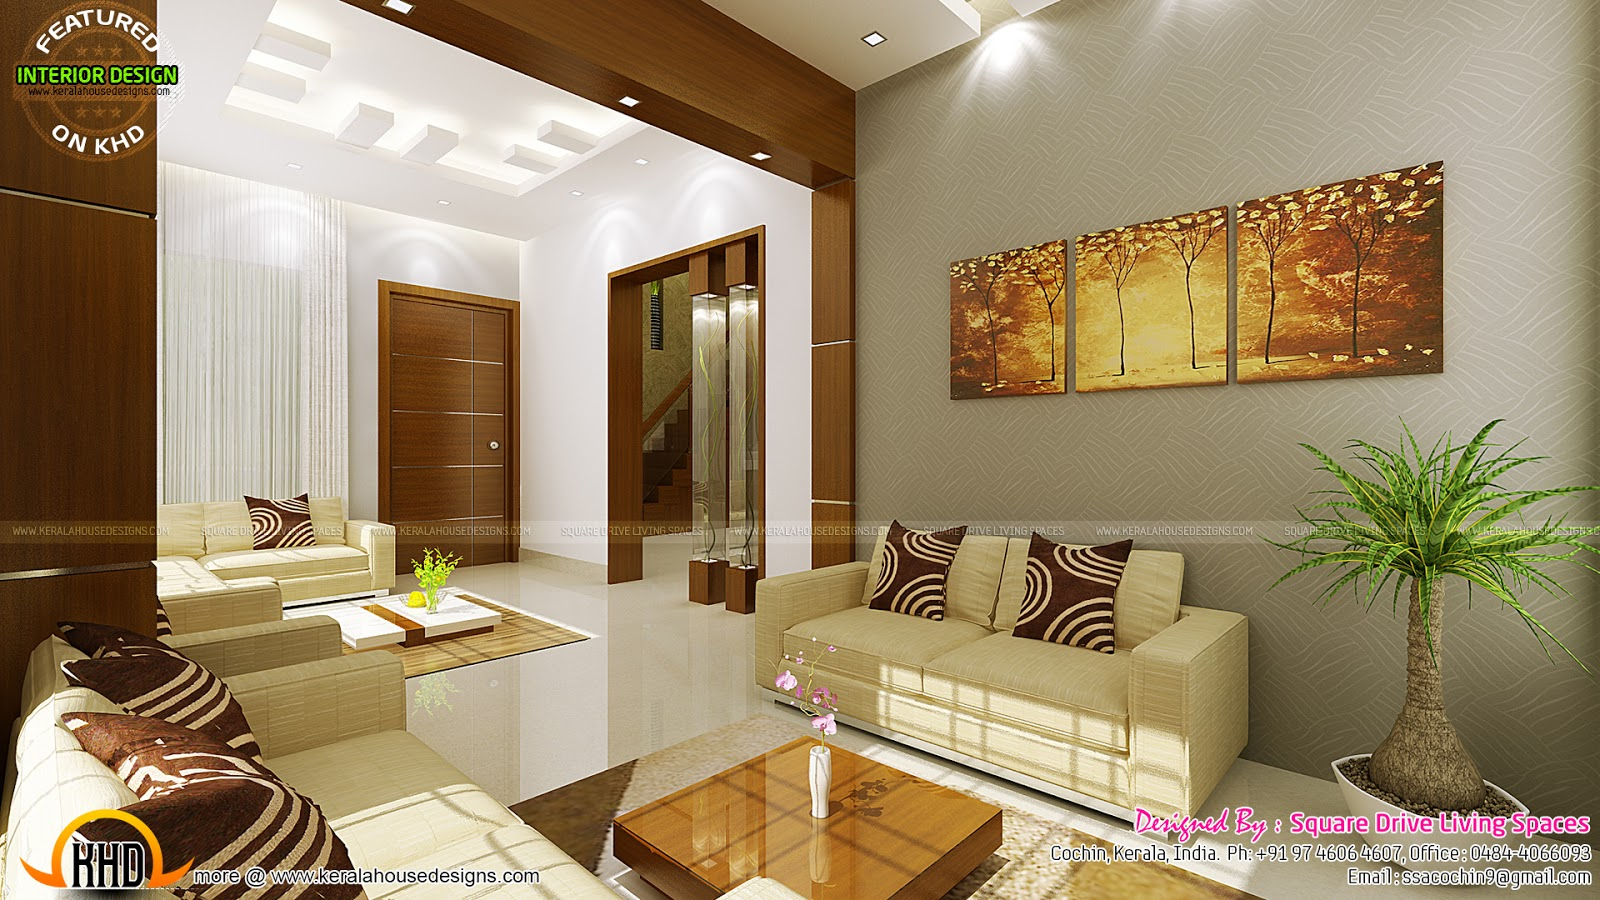 Contemporary kitchen dining and living room kerala home for Indian living room interior design photo gallery